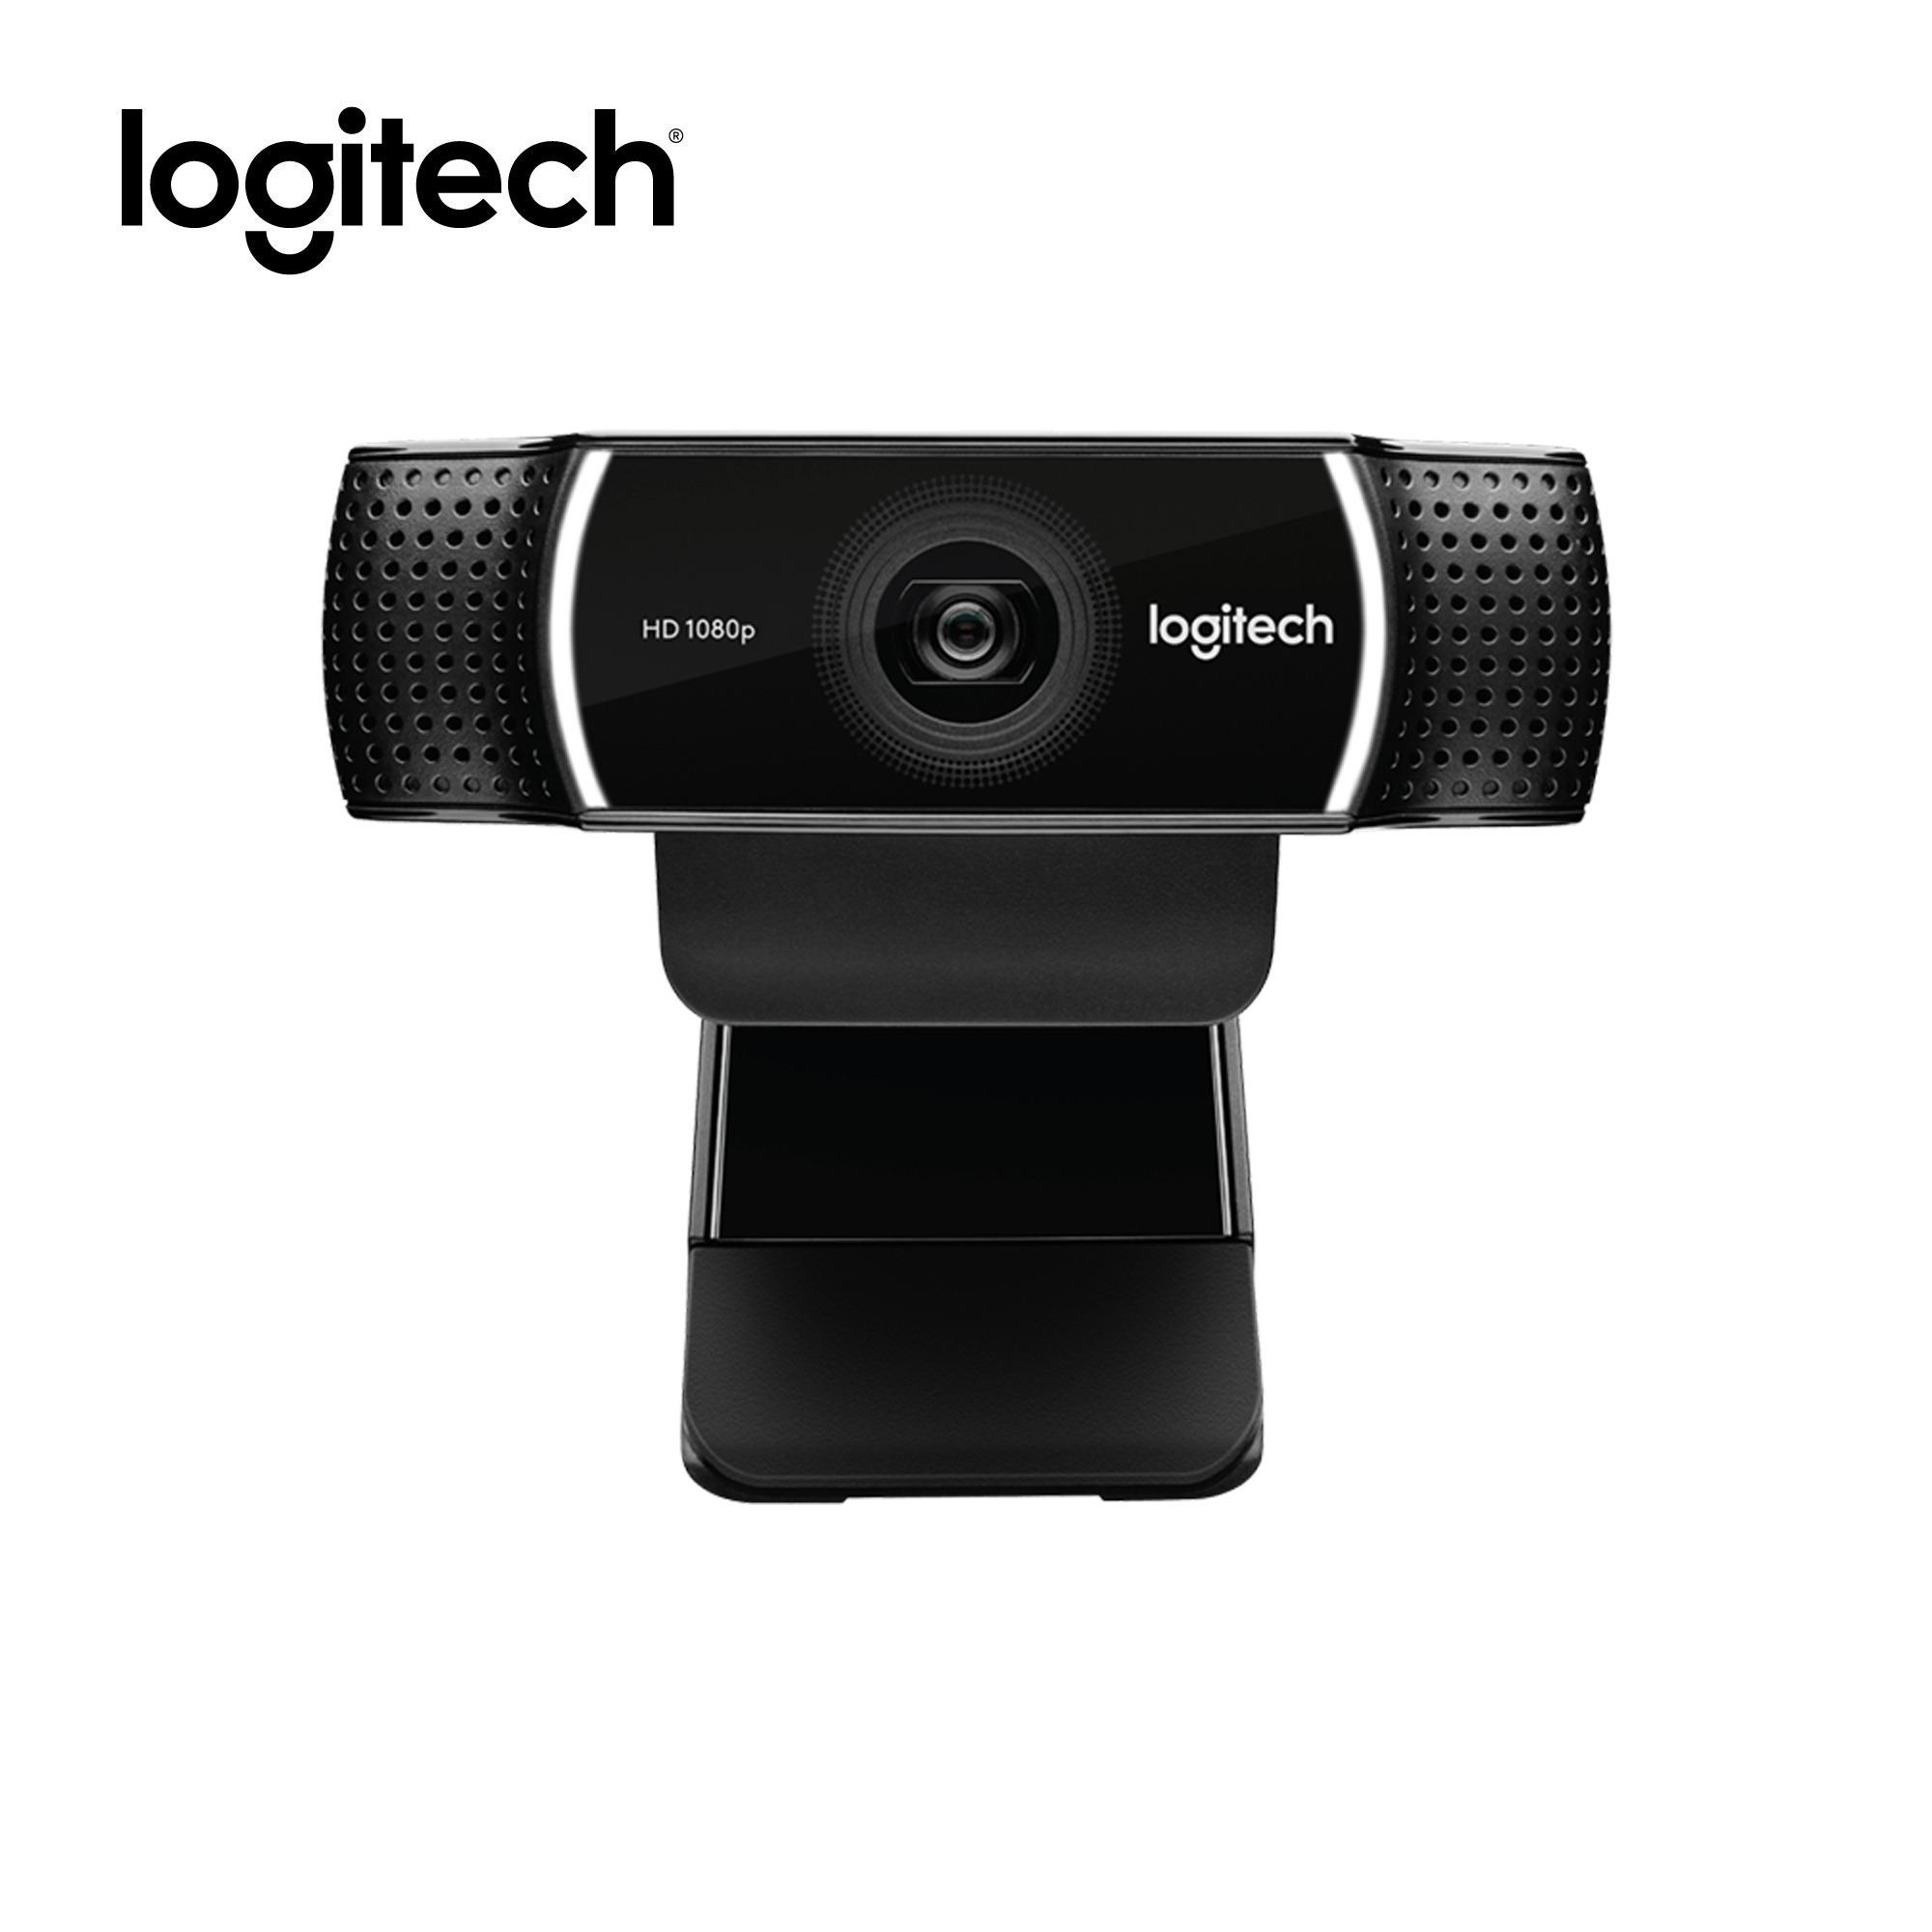 Logitech C922 Pro Stream HD Webcam with 30fps at 1080p & Autofocus, Full  Stereophonics, Free 3 month XSPLIT Premium License, 5ft cable length, Tripod